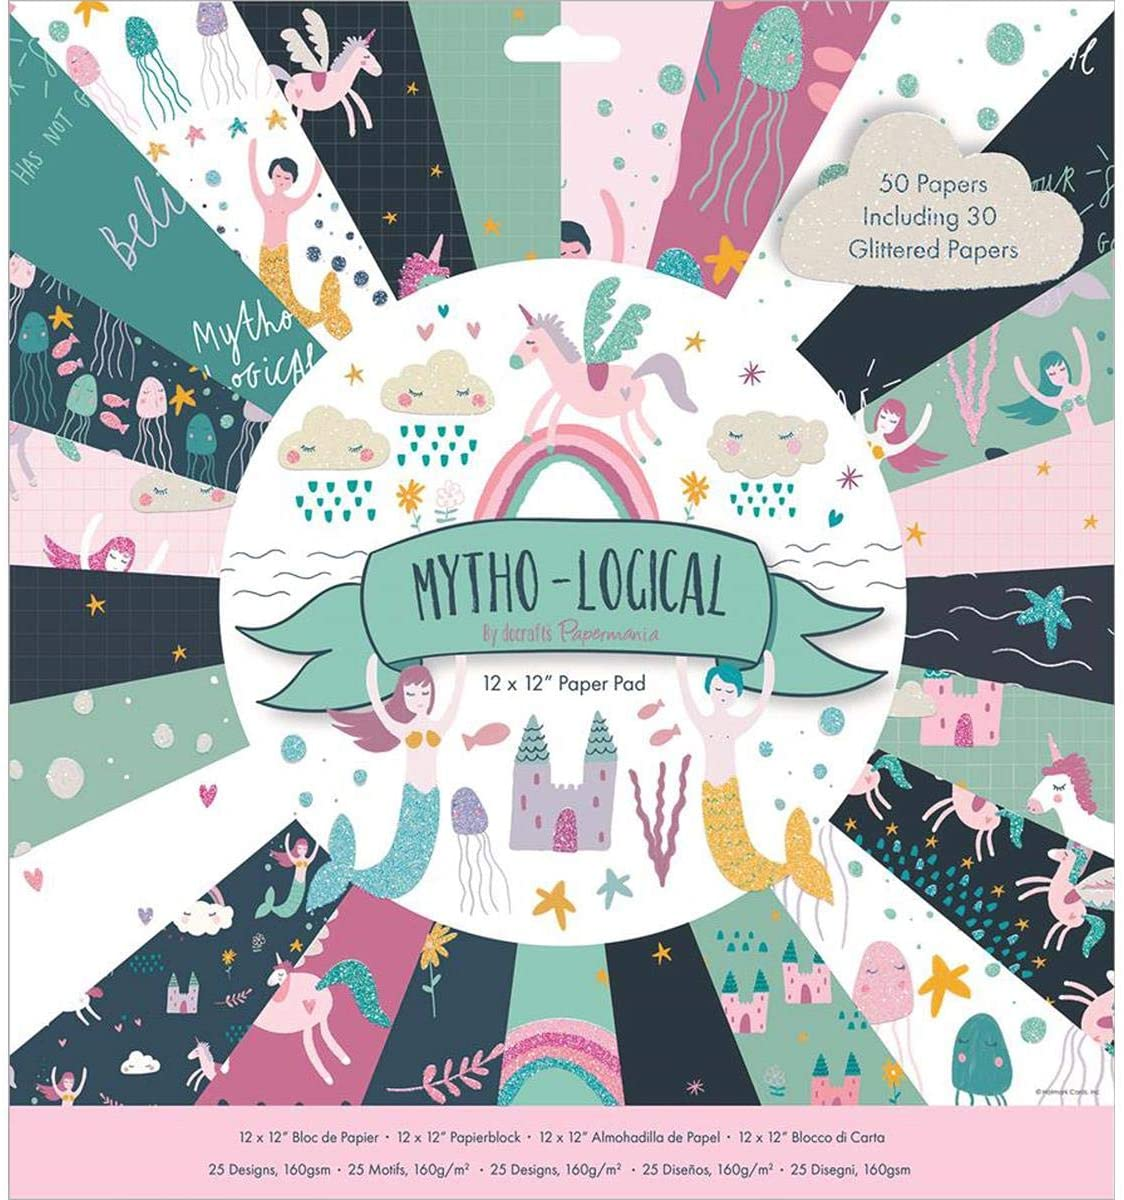 docrafts Paper Pad 12x12 Mytho-Logical, Multi-Colour